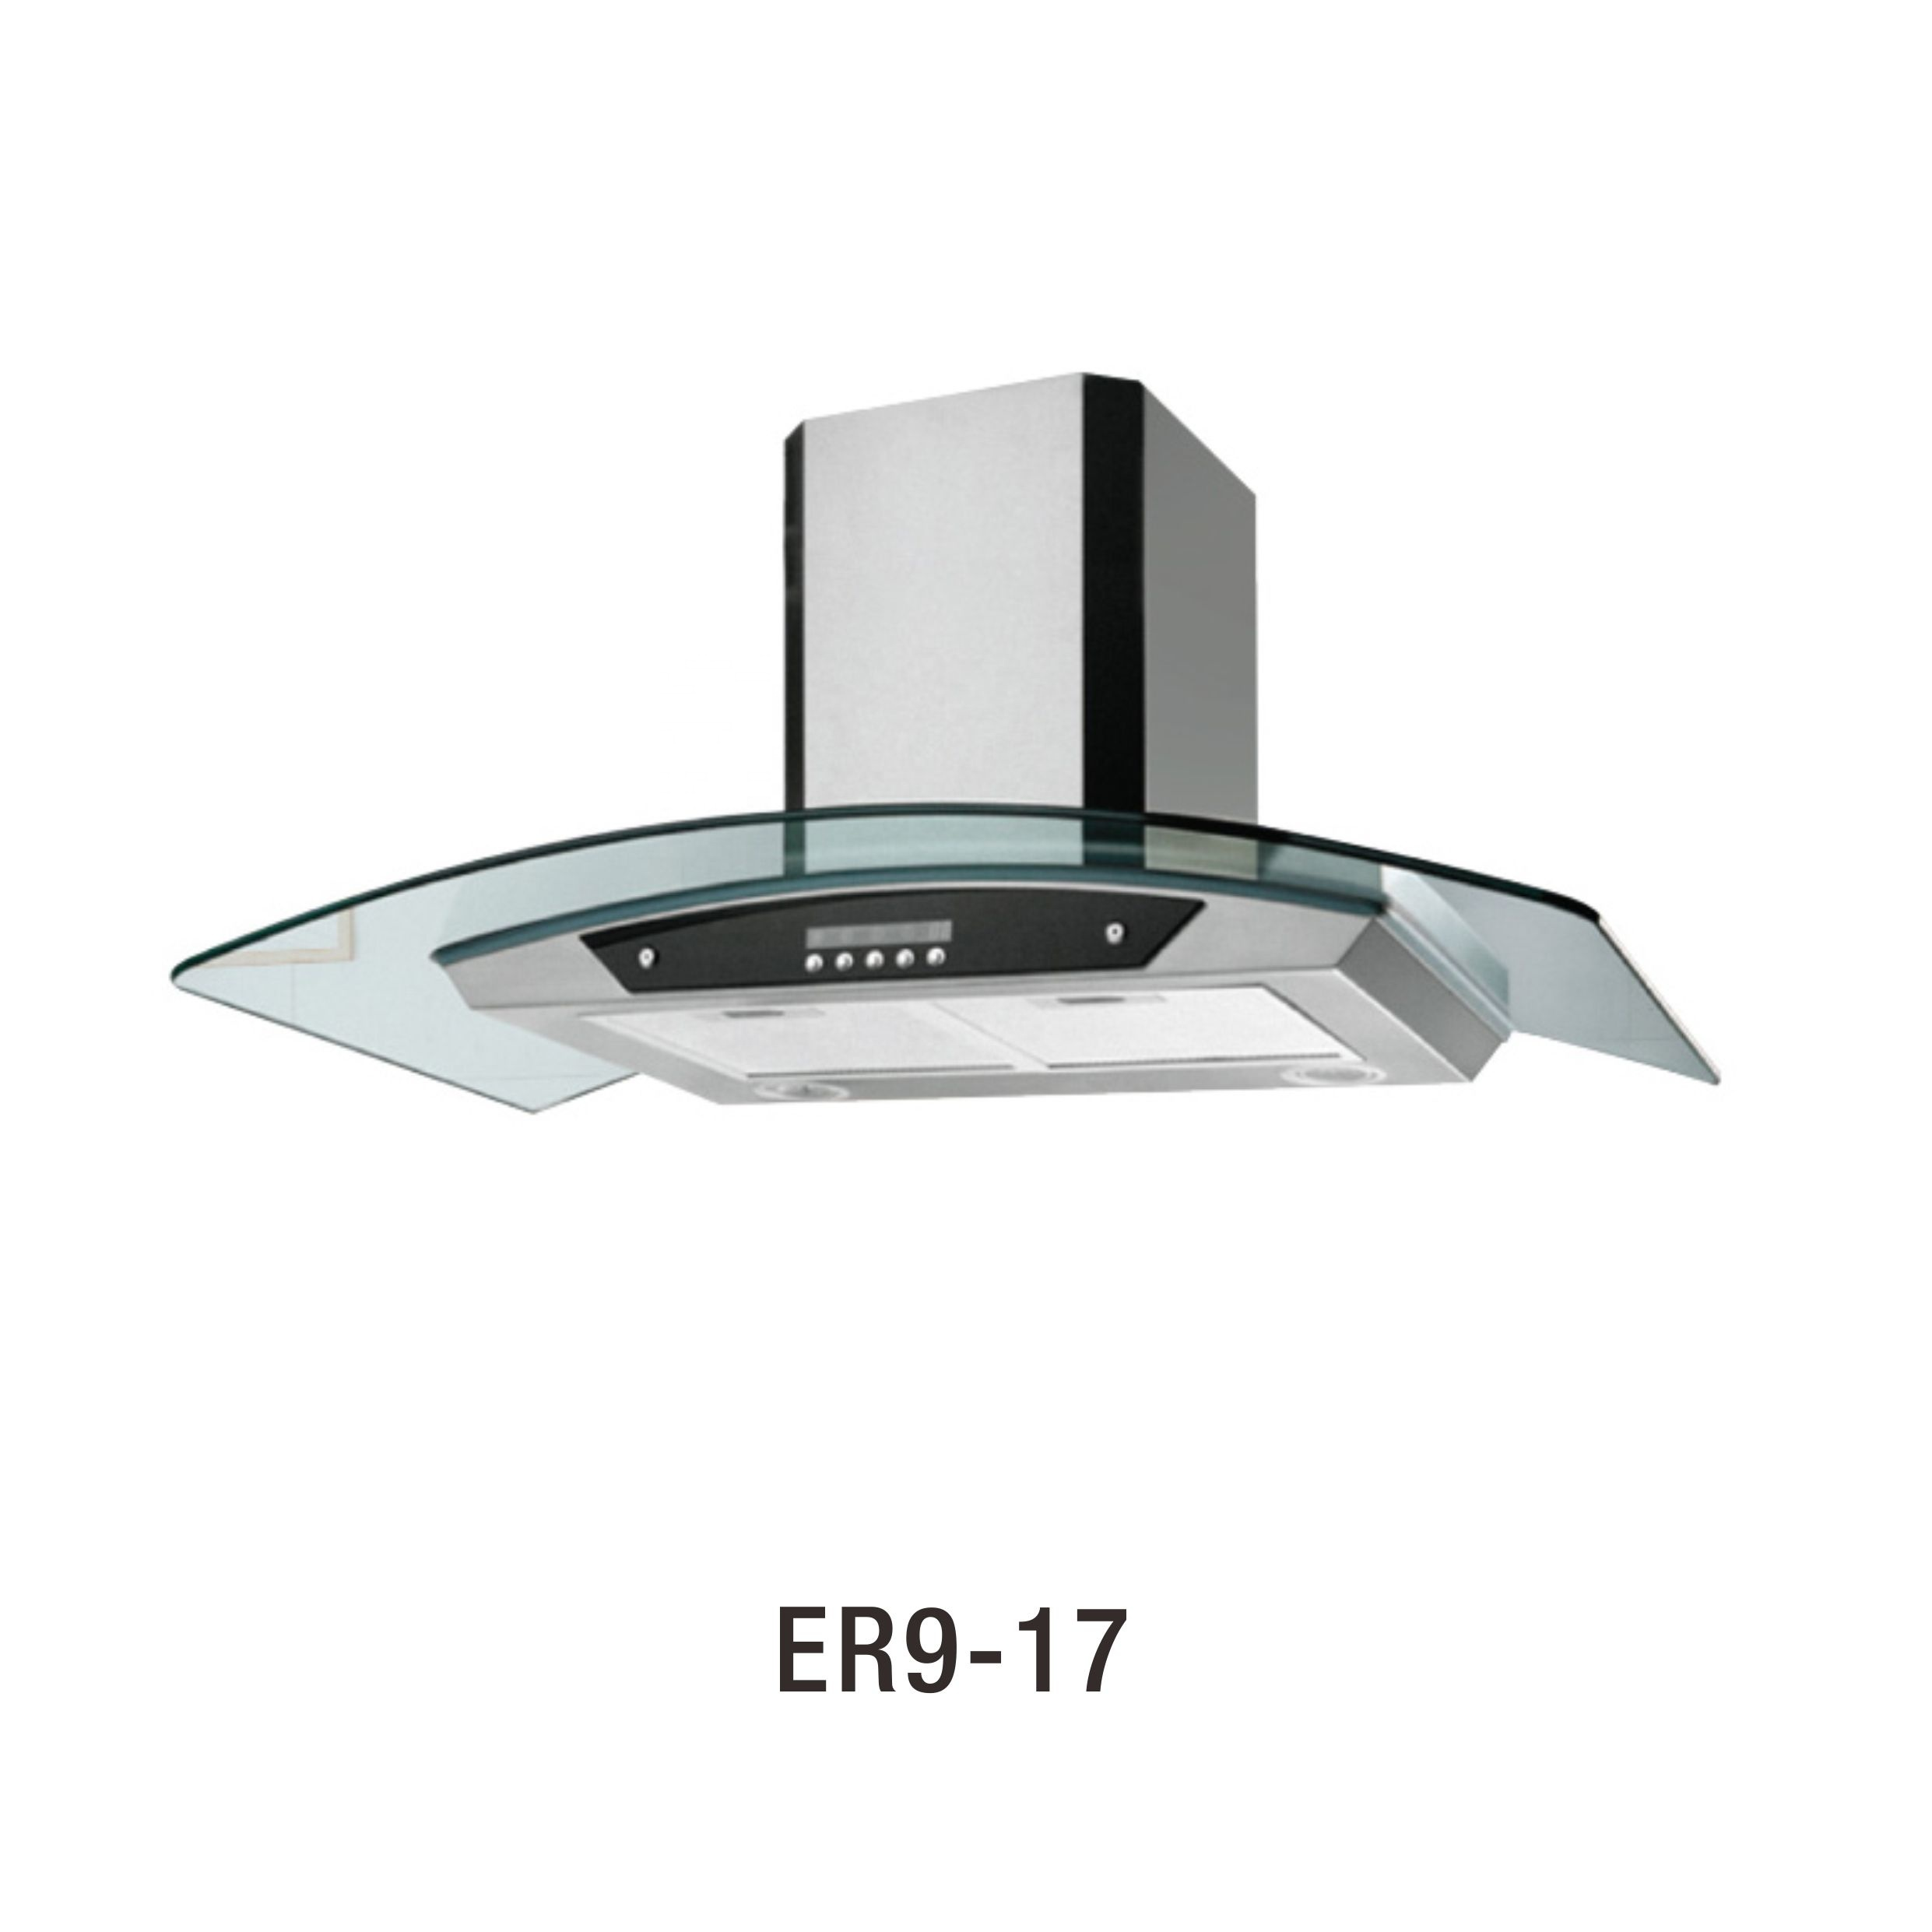 Er9 17 Turboair Range Hood Co2 Extractor Kitchen Exhaust Fan Price Buy Turboair Range Hood Co2 Extractor Kitchen Exhaust Fan Price Product On Alibaba Com